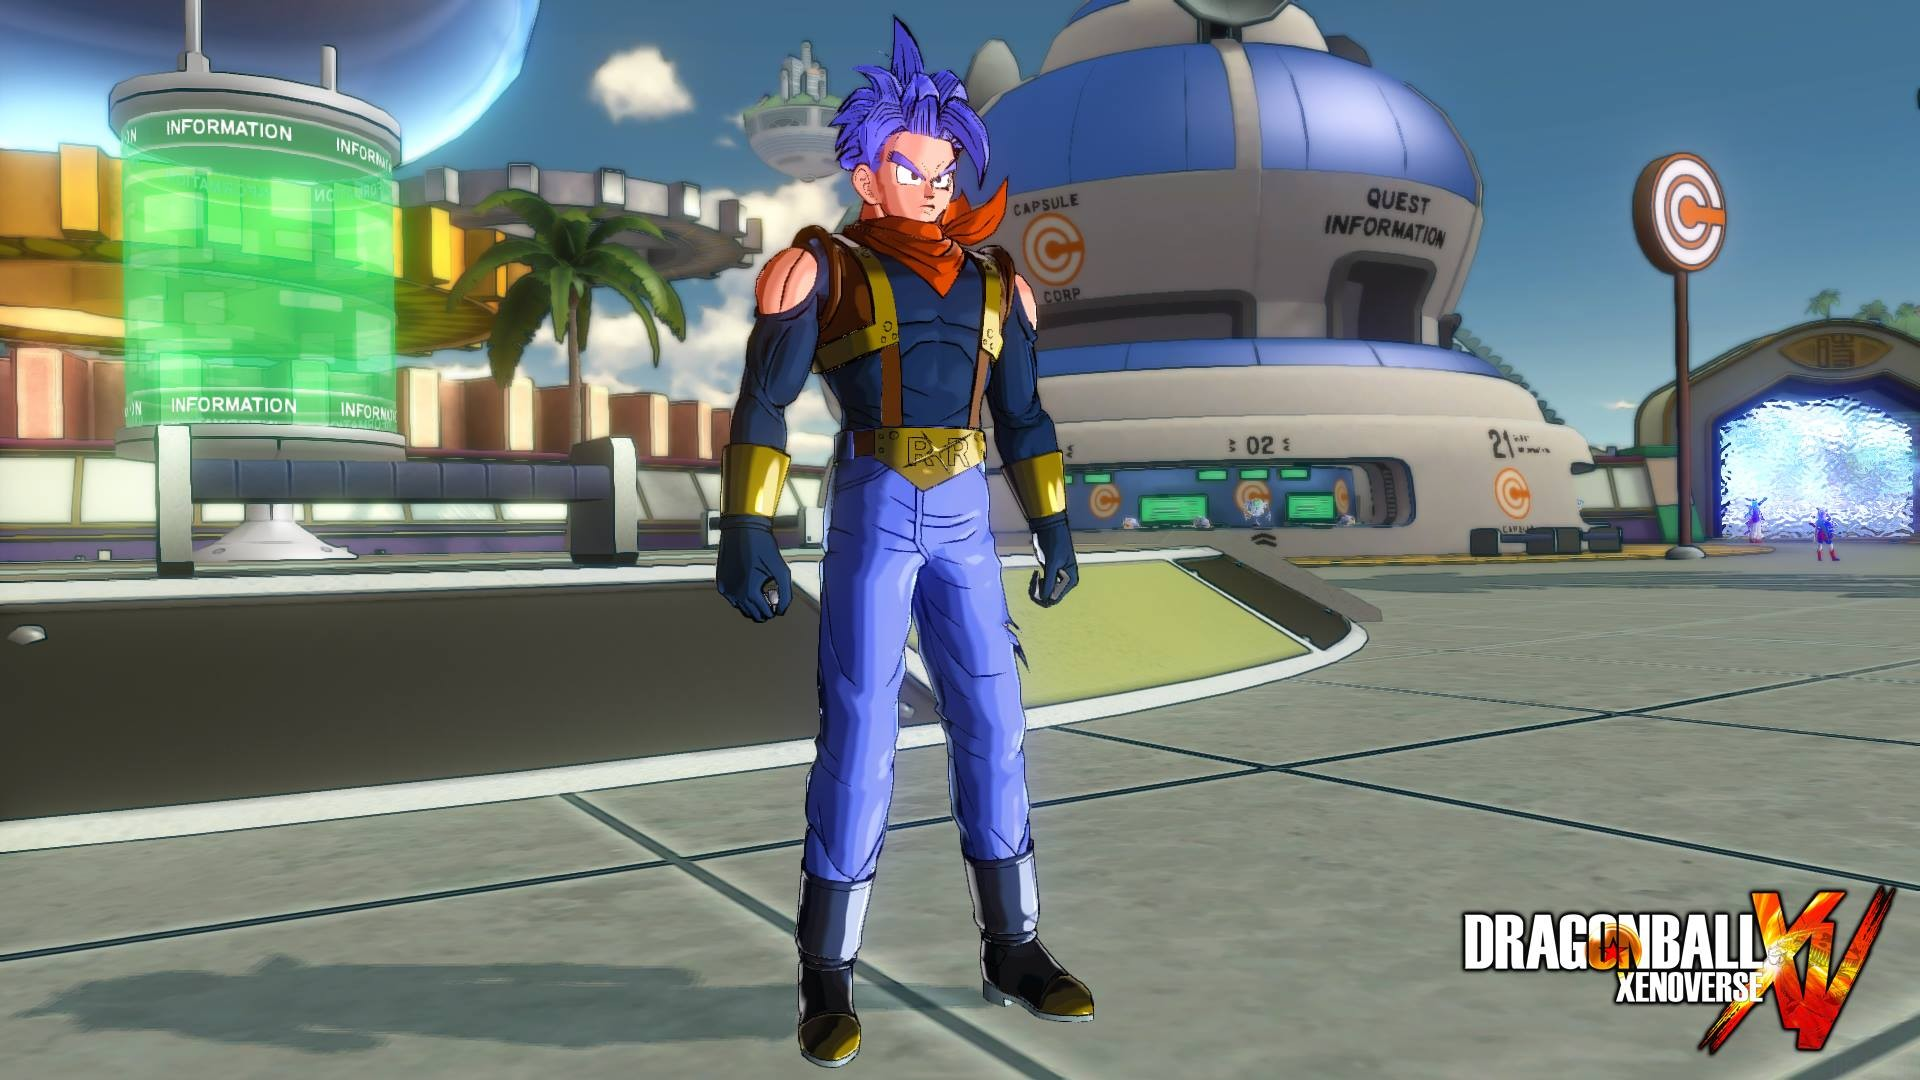 Dragon Ball Xenoverse Le 2nd Dlc En Images